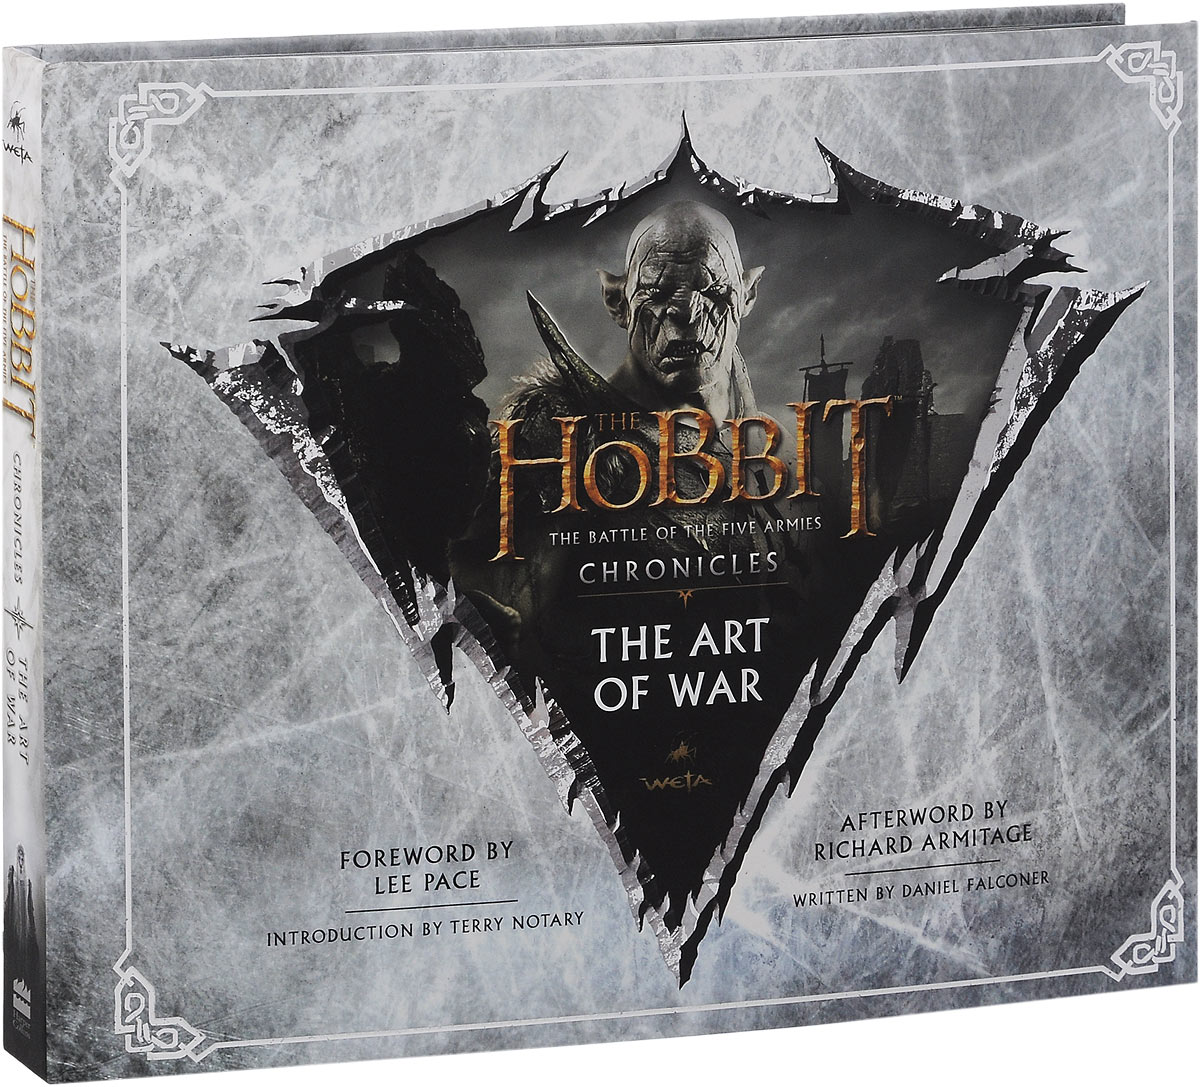 The Hobbit: The Battle of the Five Armies: Chronicles: The Art of War 12x serial port connector rs232 dr9 9 pin adapter male